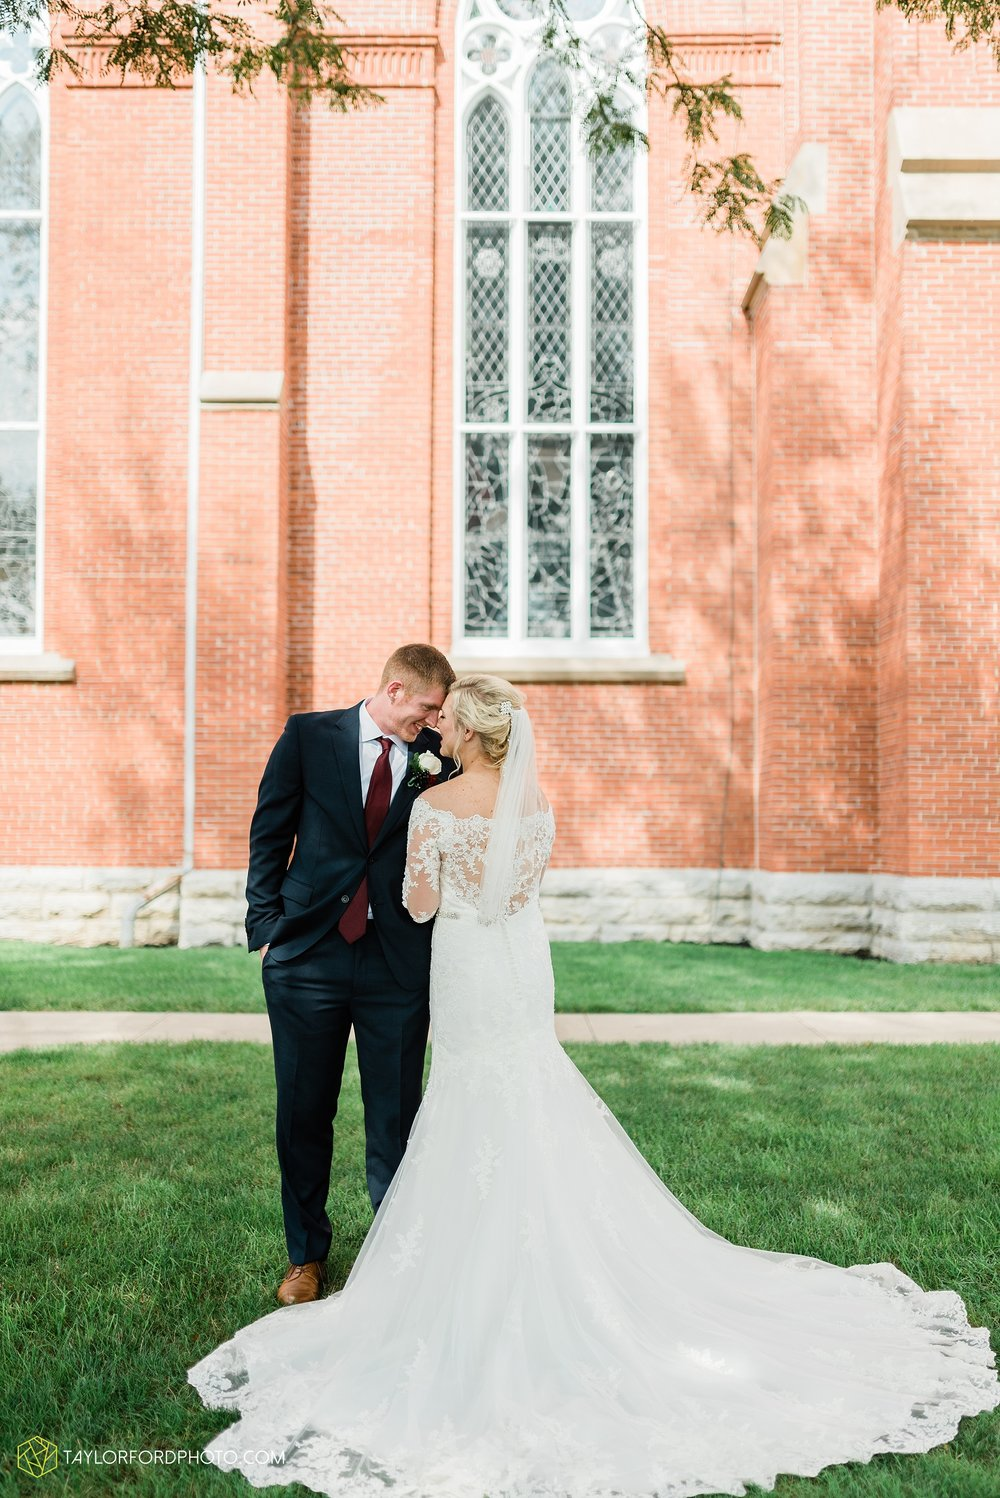 gayle-rayman-mike-steele-ottoville-ohio-wedding-immaculate-conception-parish-center-wedding-sycamore-lake-winery-wannamachers-photographer-taylor-ford-photography_0402.jpg